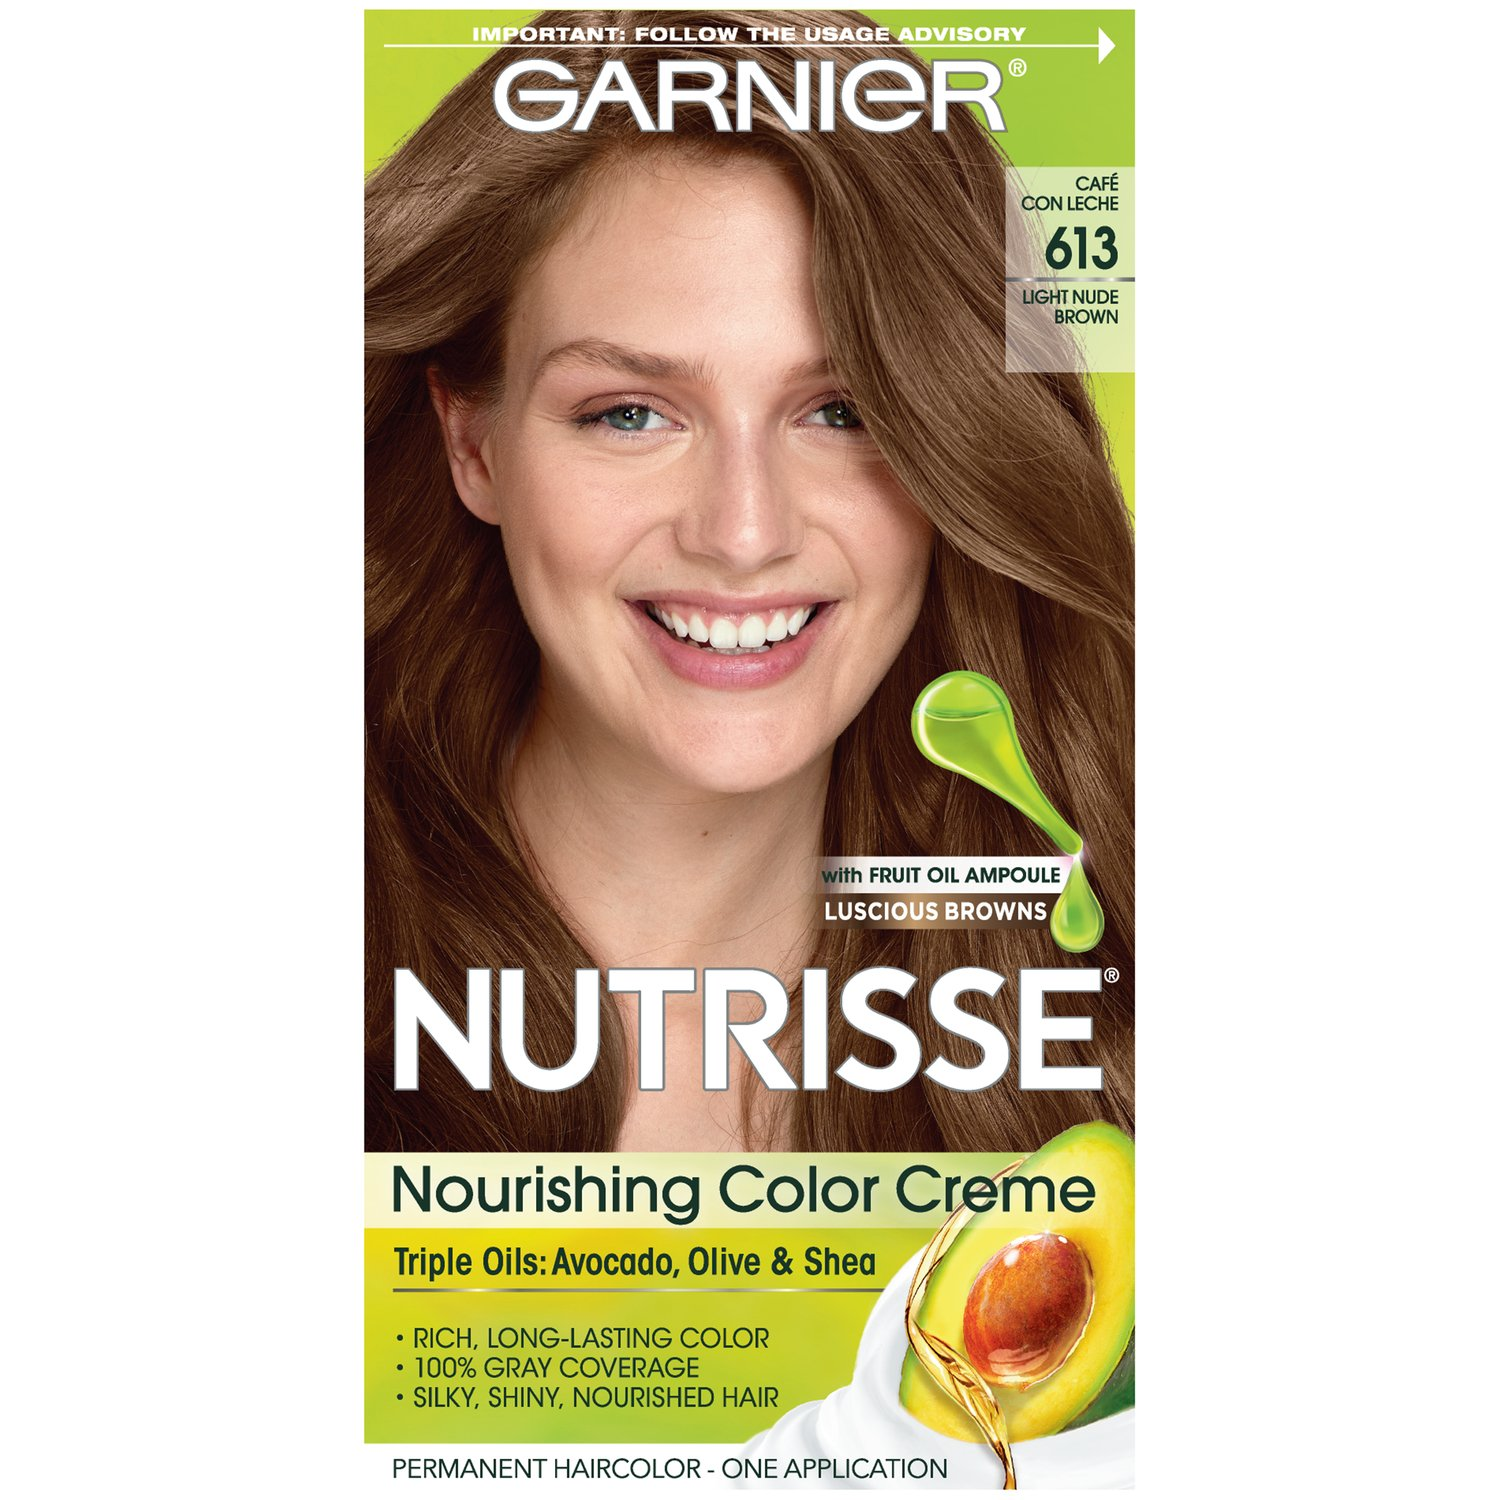 Garnier Nutrisse Nourishing Hair Color Creme, 613 Light Nude Brown (Packaging May Vary)